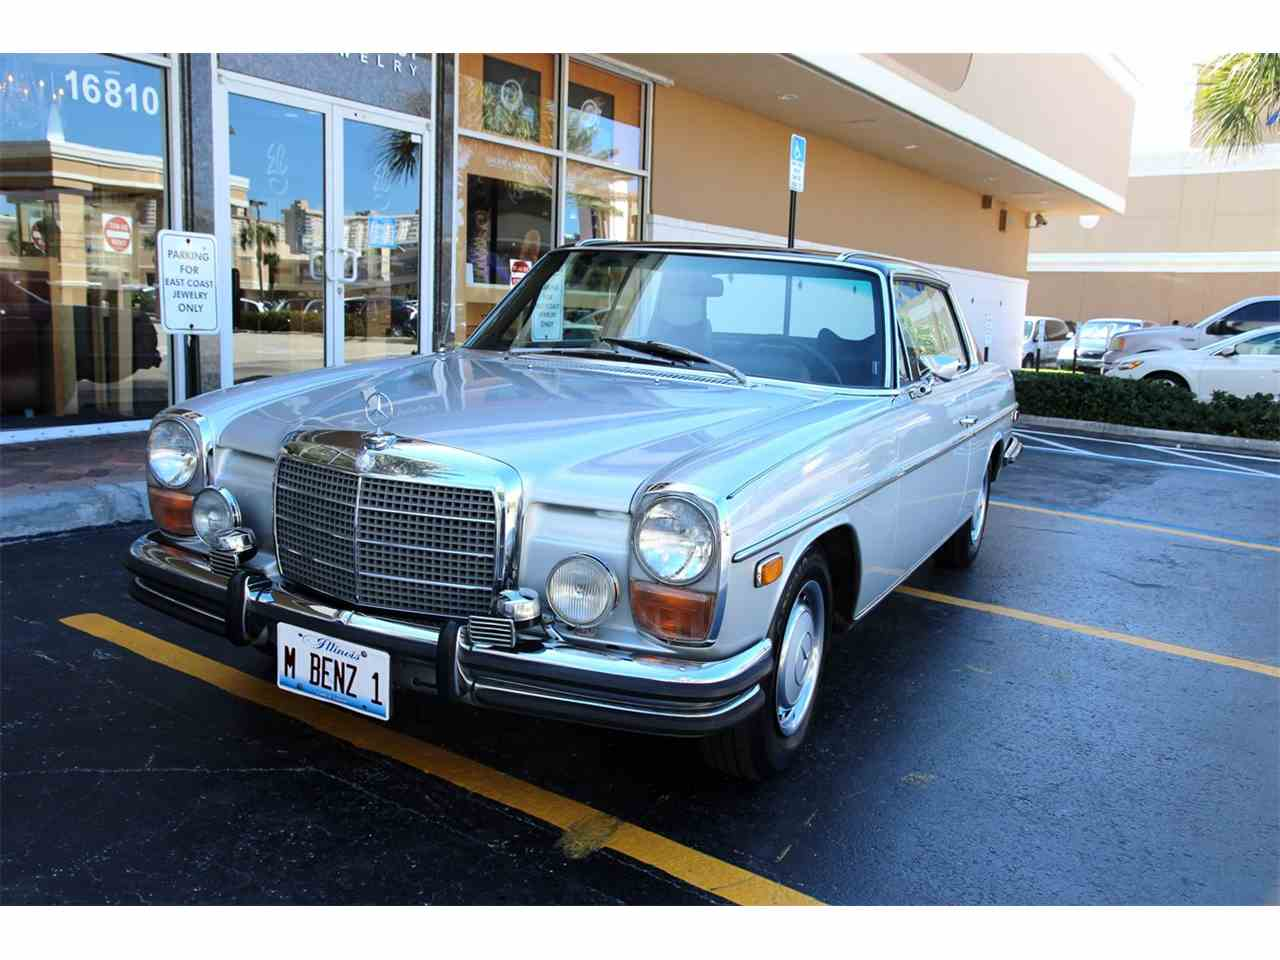 Cars For Sale Miami Beach: 1973 Mercedes-Benz 280C For Sale